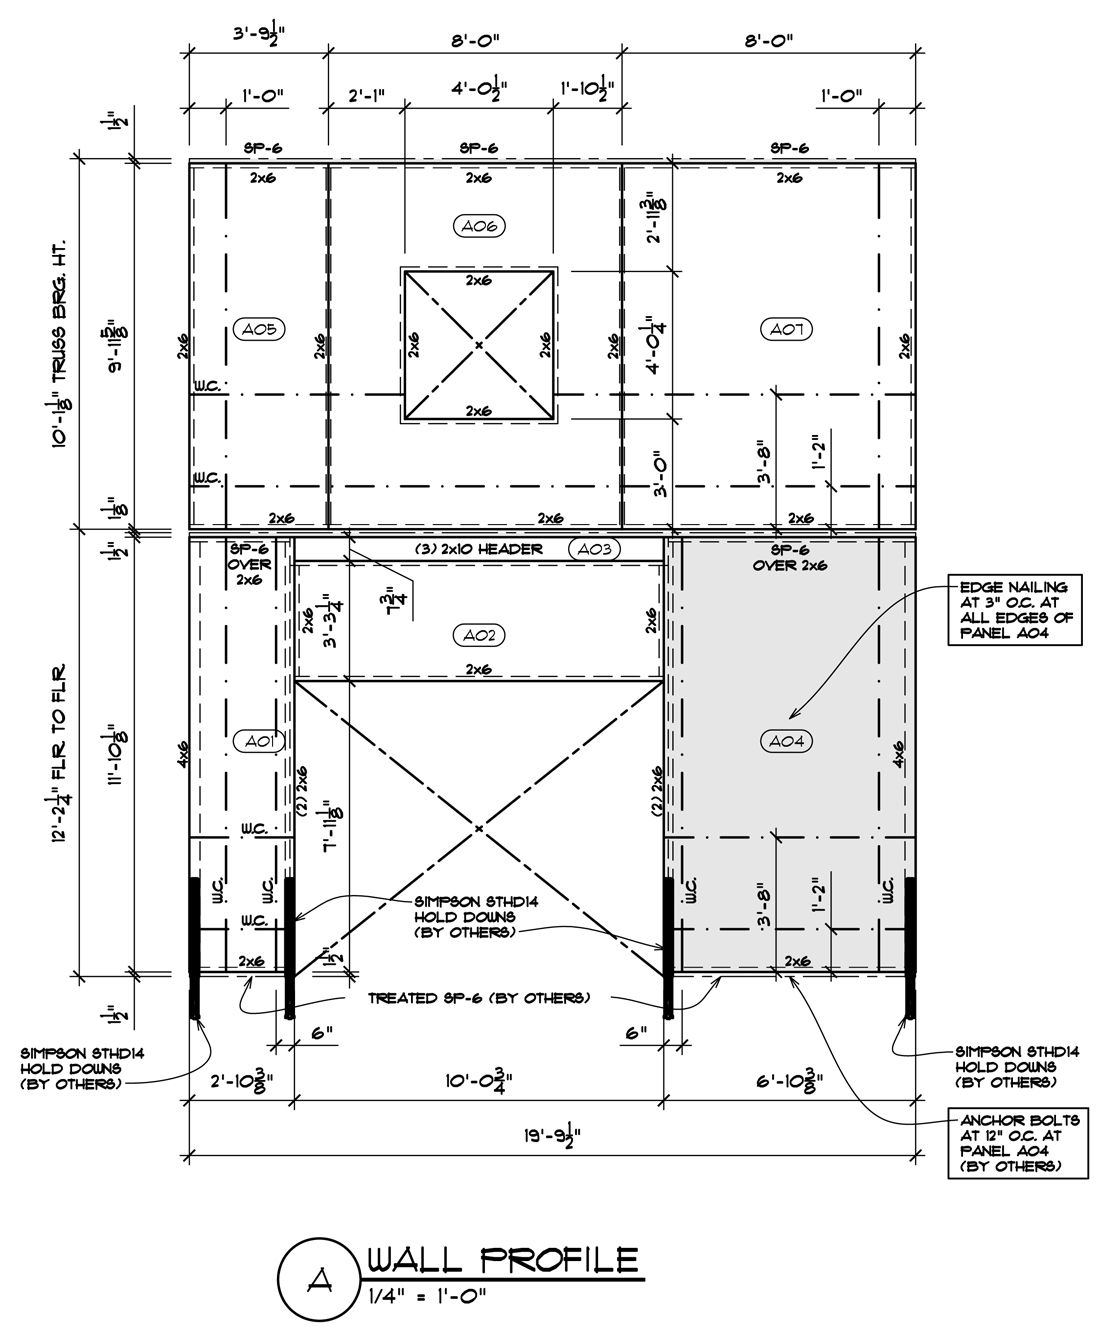 Building With Structural Insulated Panels Or Sips Structural Insulated Panels Sips Panels Insulated Panels